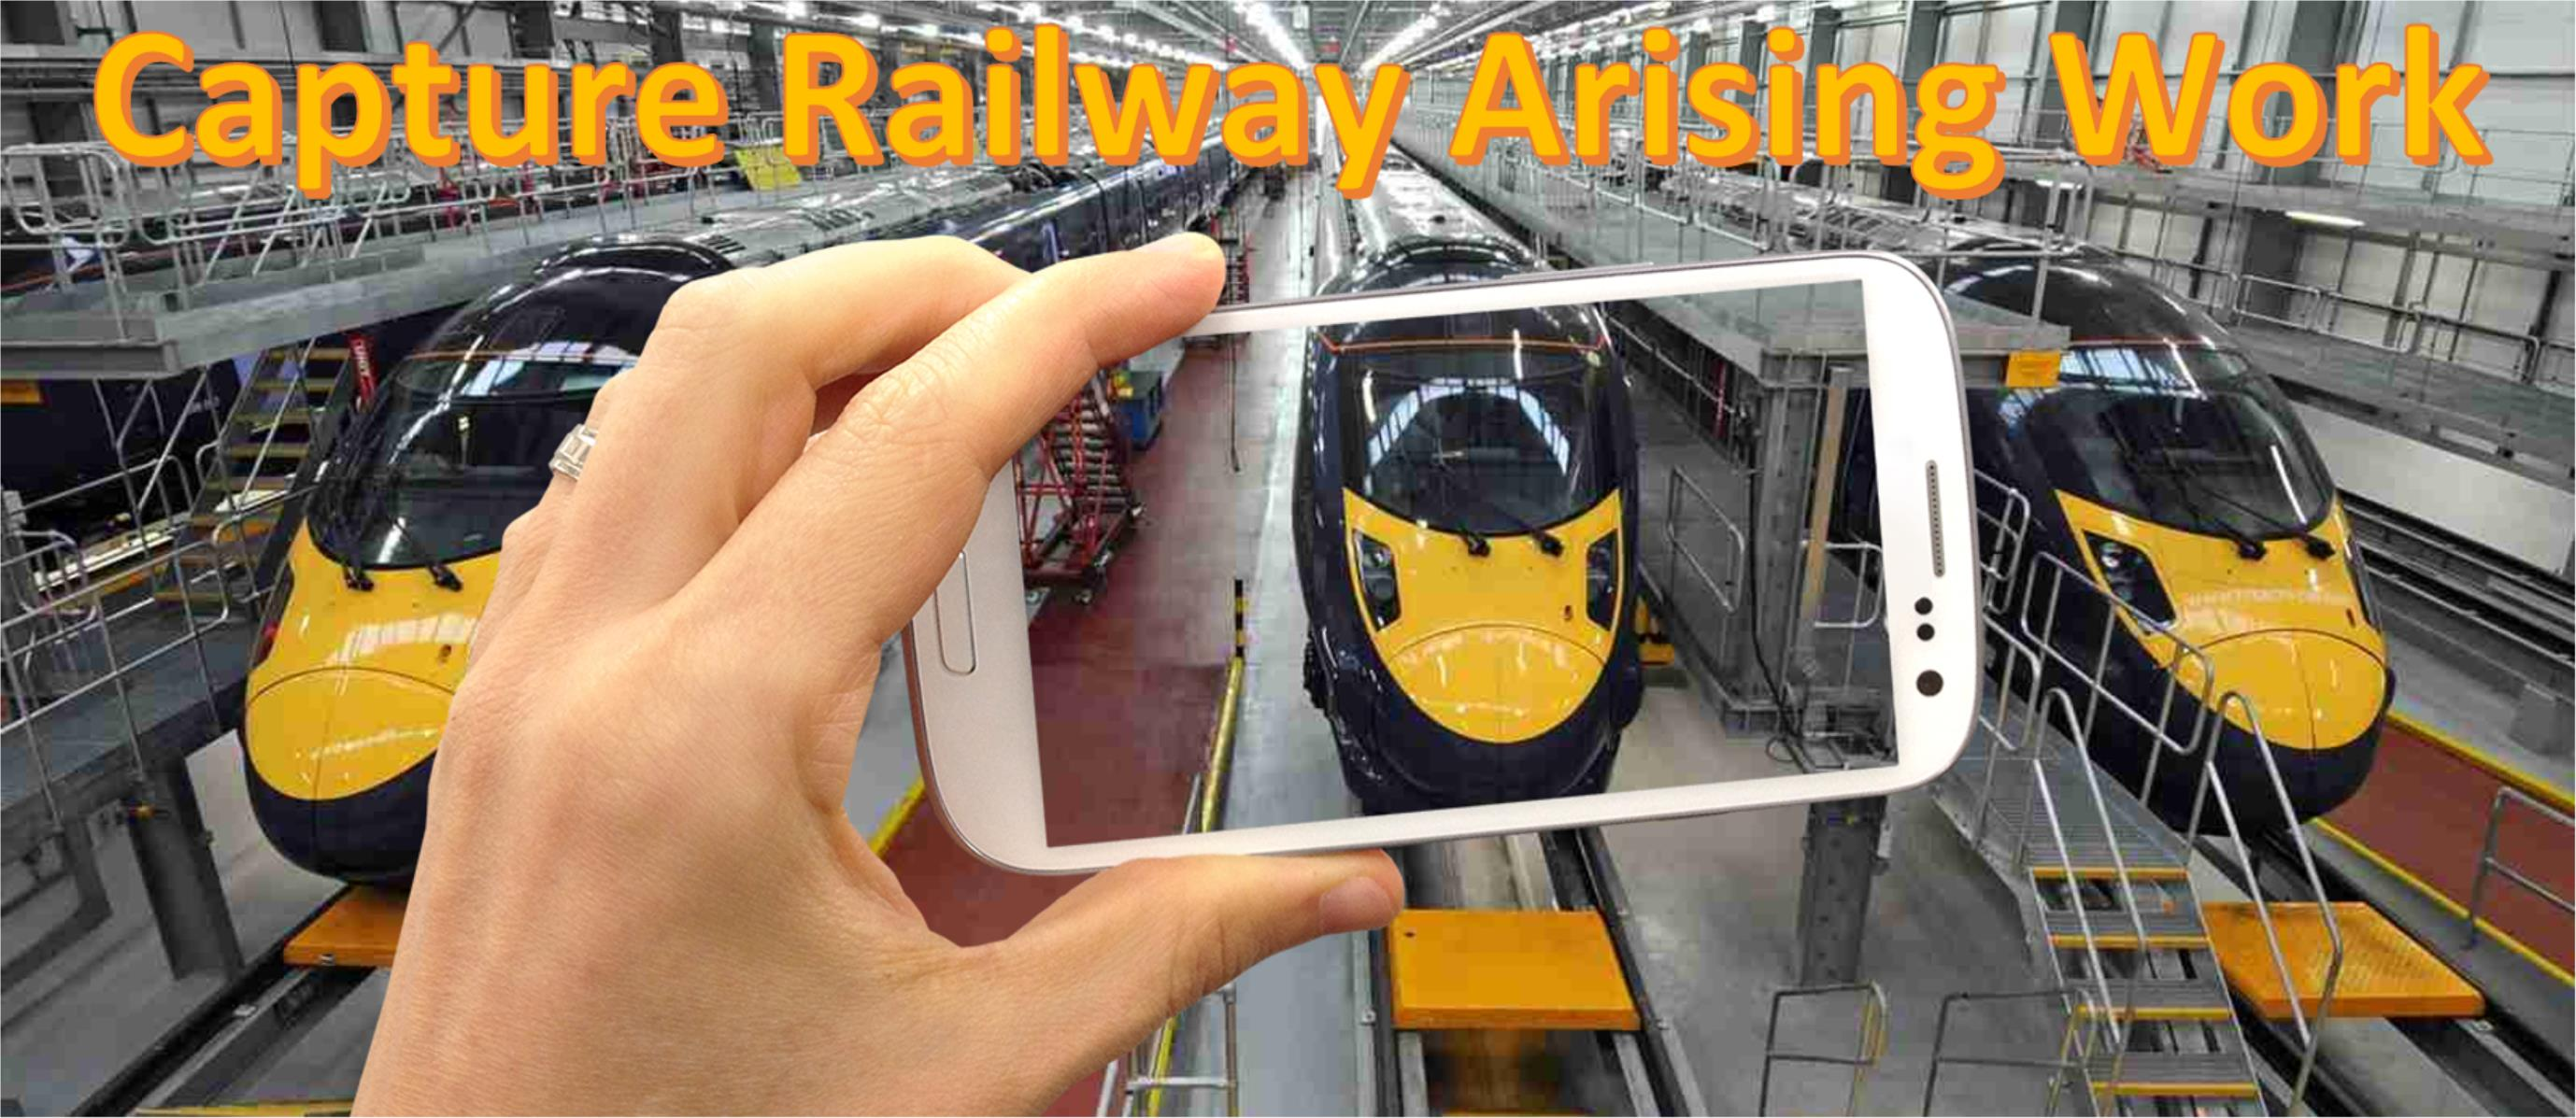 Capture Railway Arising Work